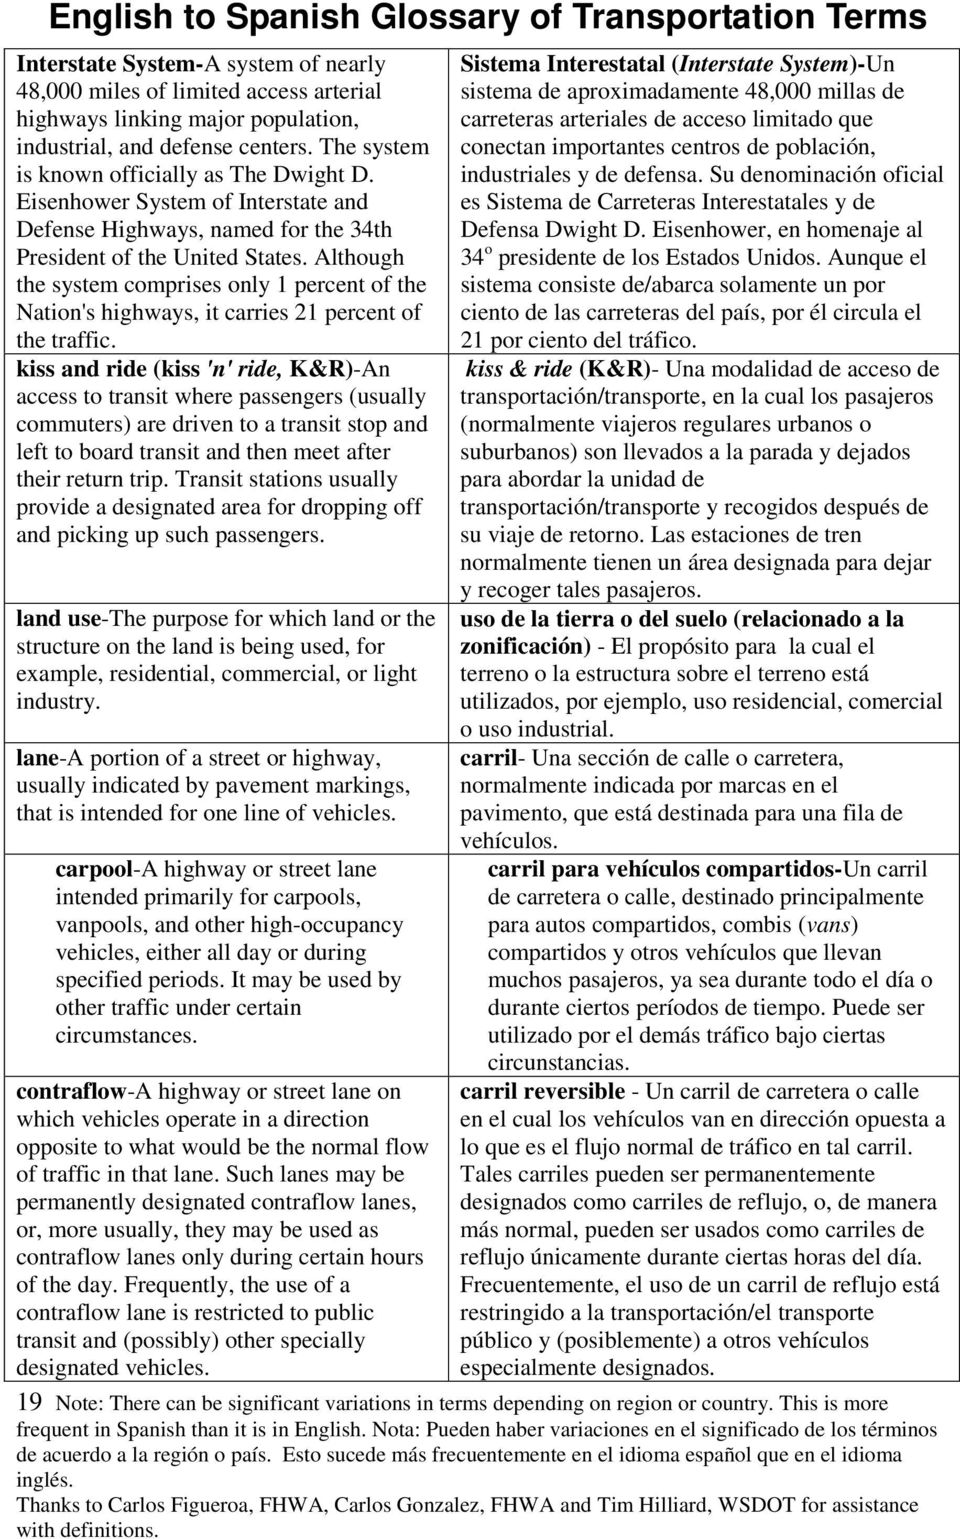 Although the system comprises only 1 percent of the Nation's highways, it carries 21 percent of the traffic.